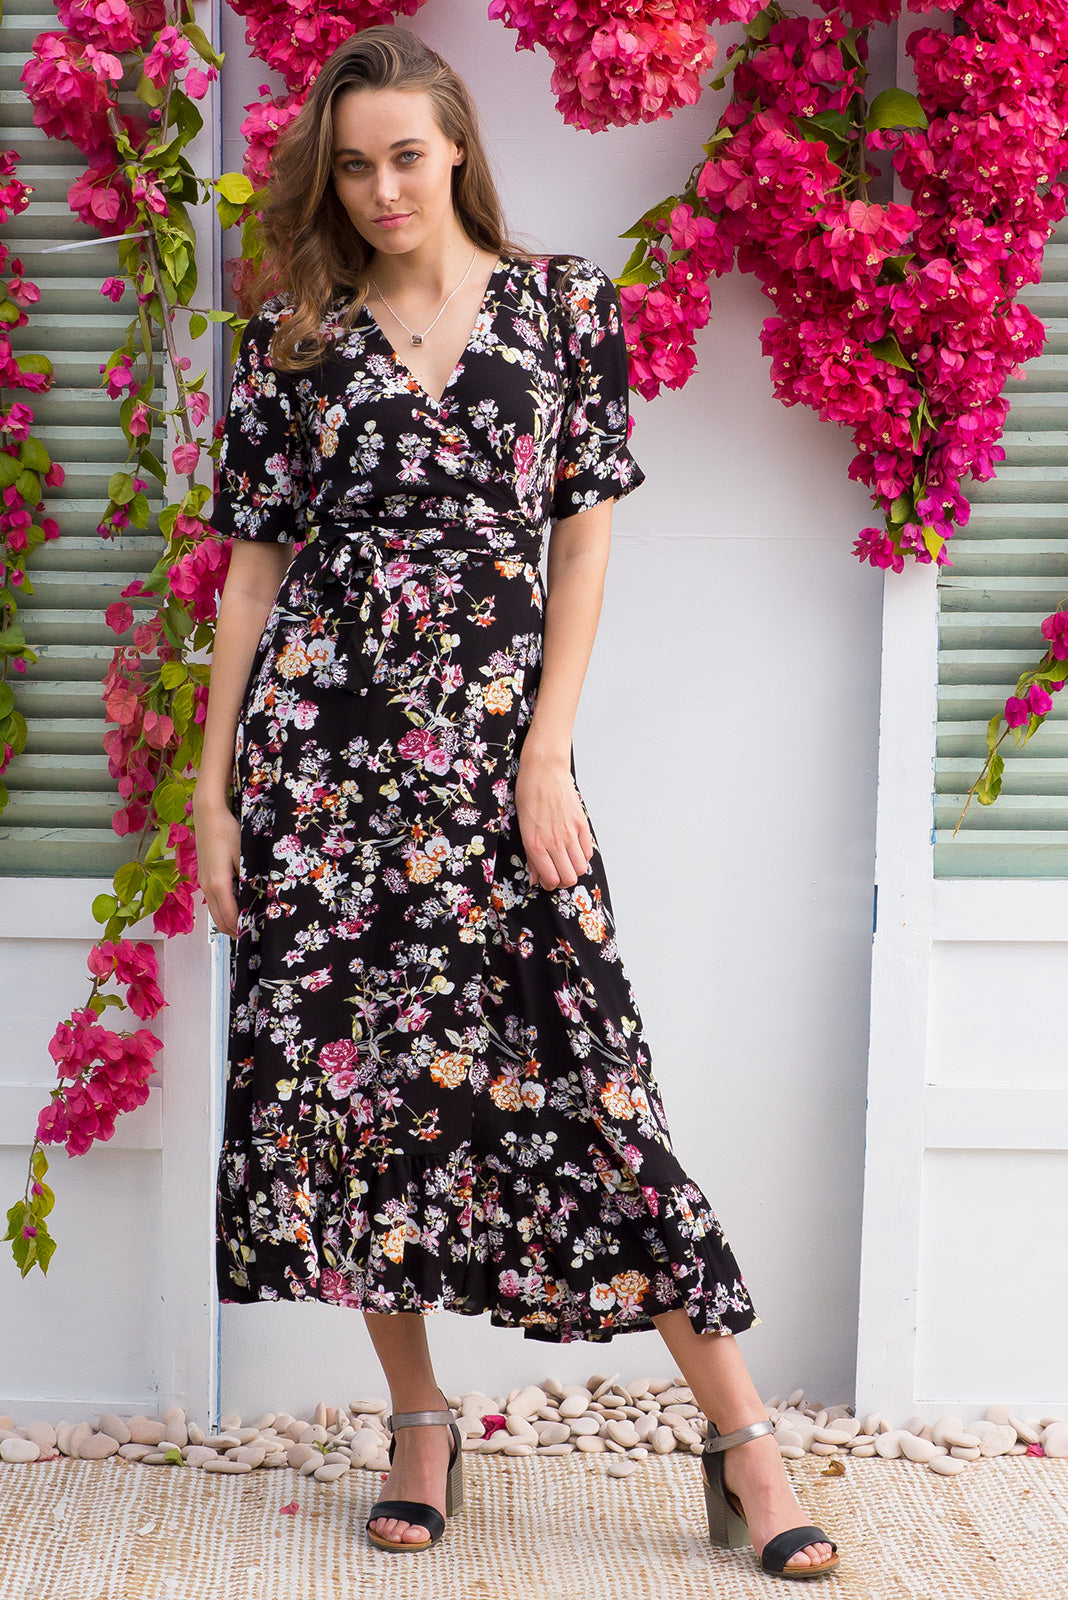 Martinique Secret Garden Maxi Wrap Dress in a 1940's inspired style with cuffed midi sleeves and a delicate hemline frill in black floral on crinkle woven rayon